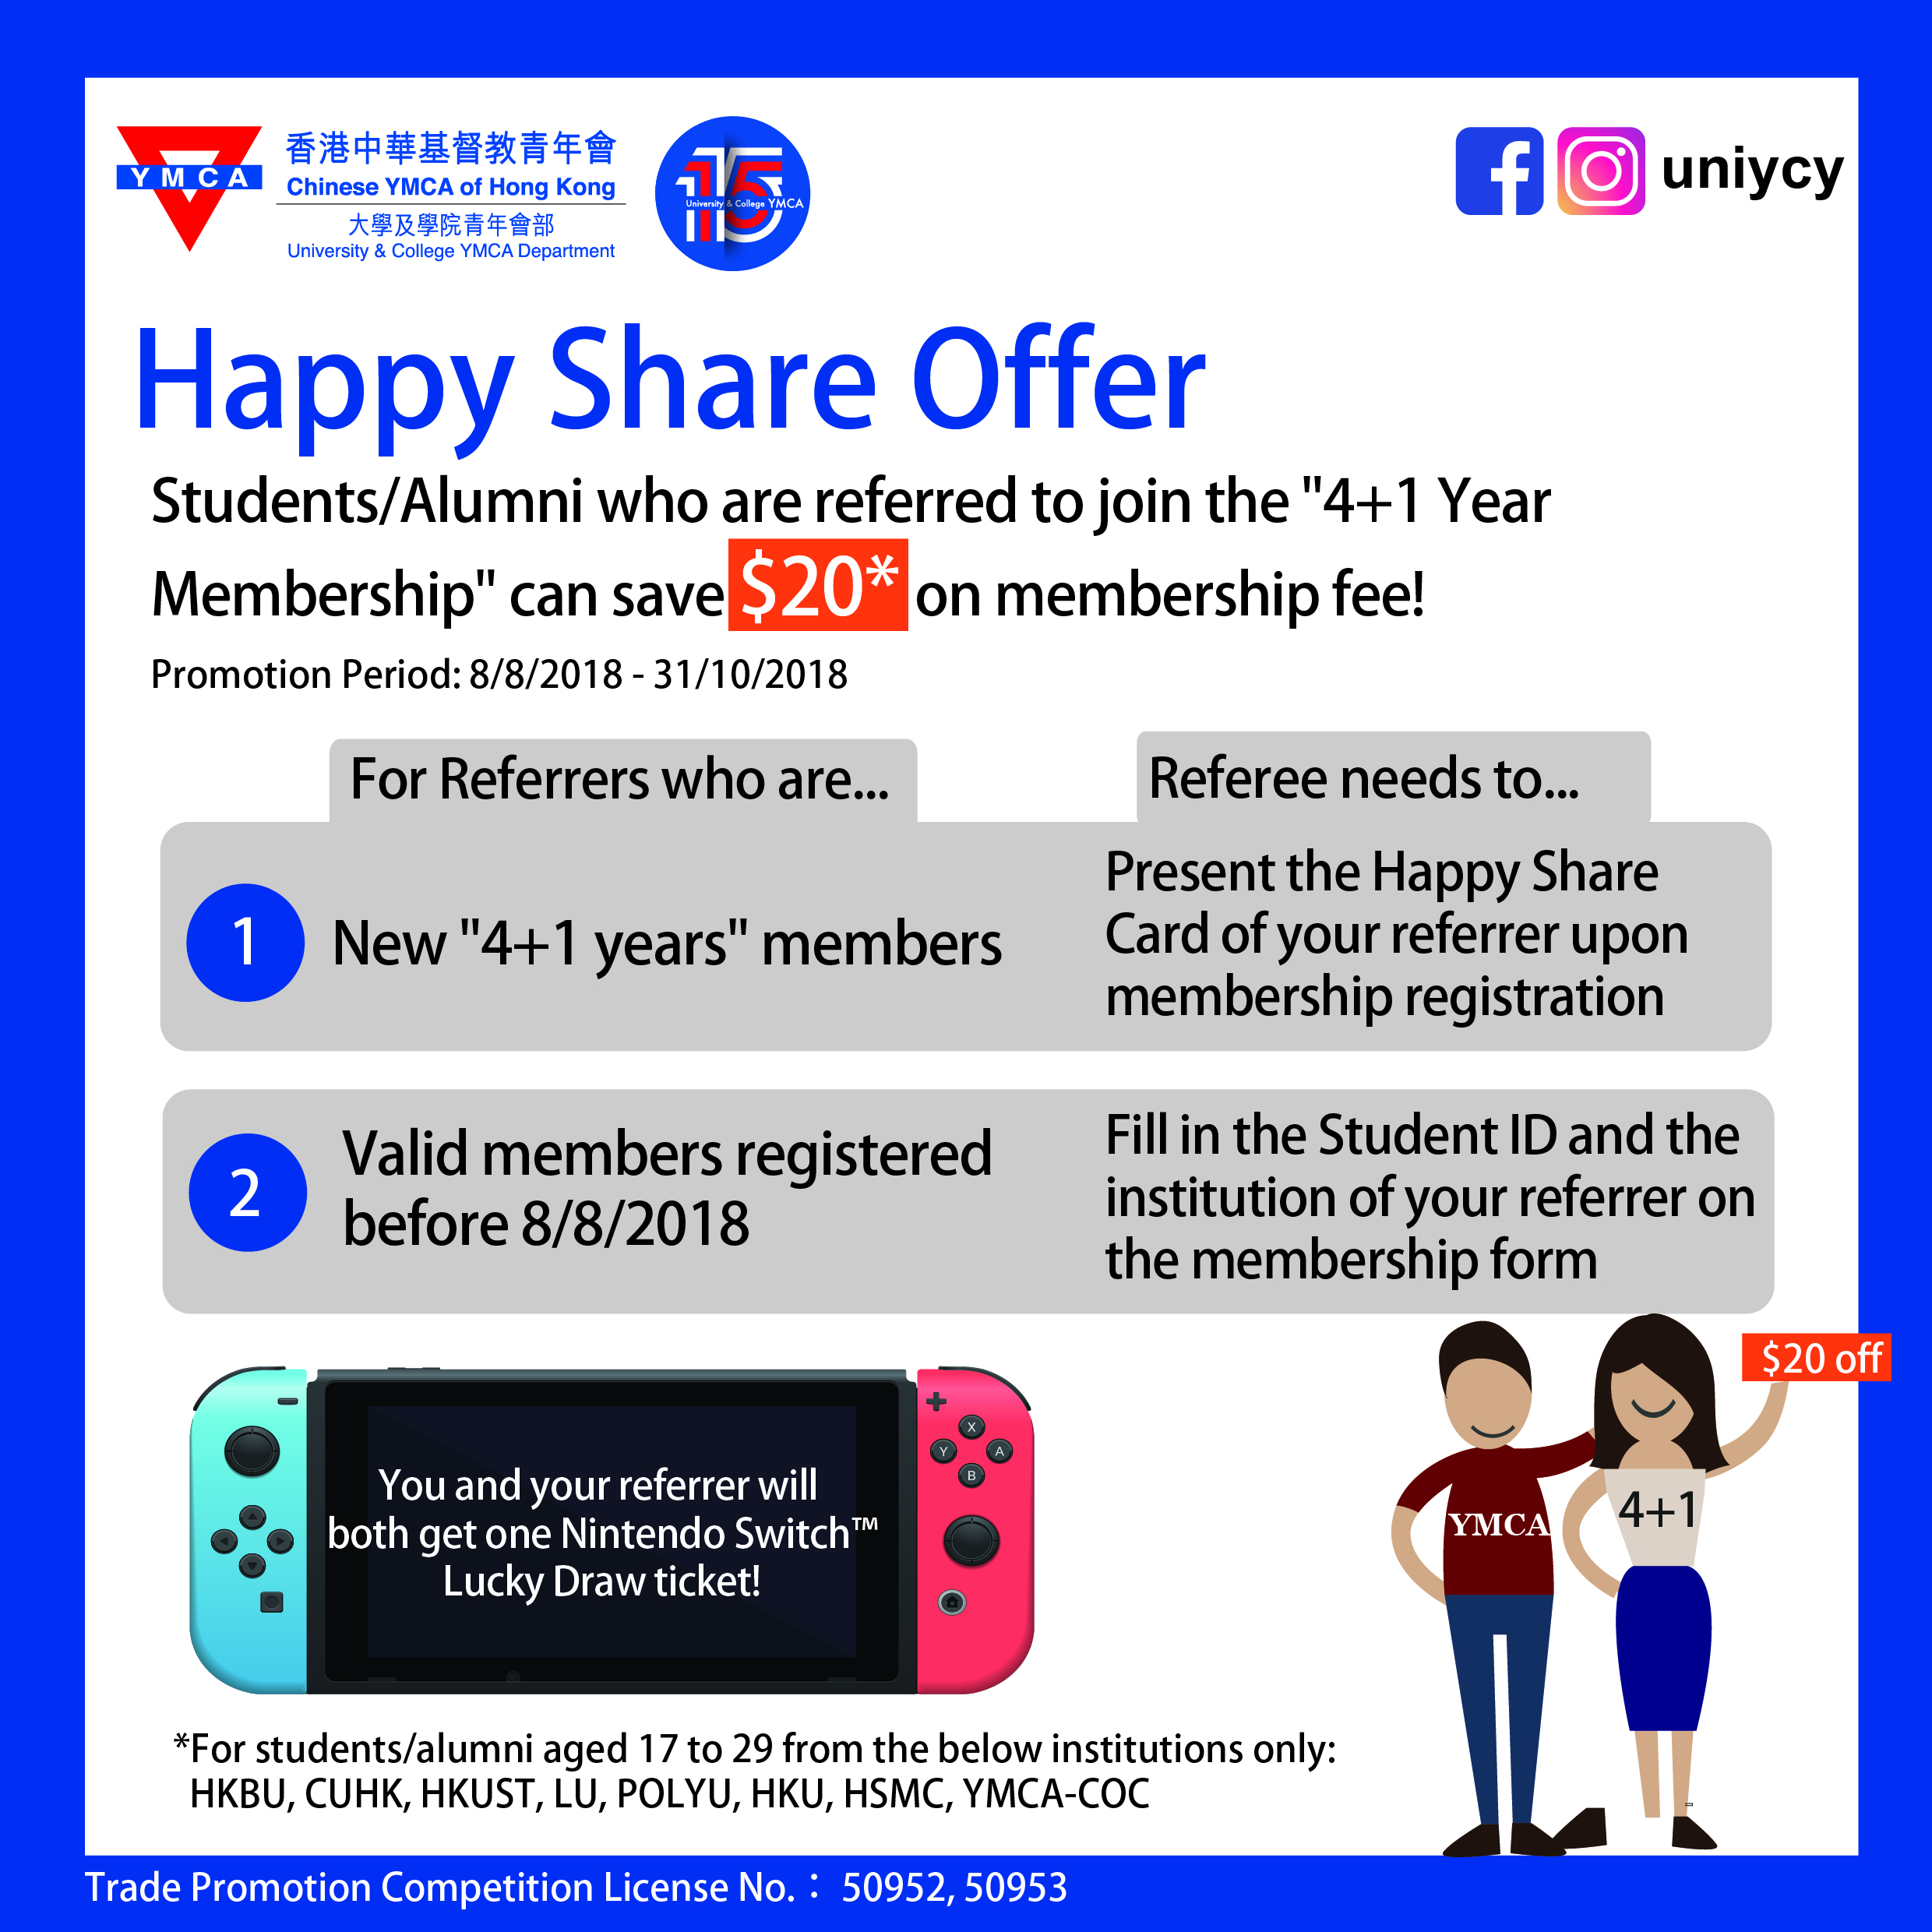 Happy Share Offer Details